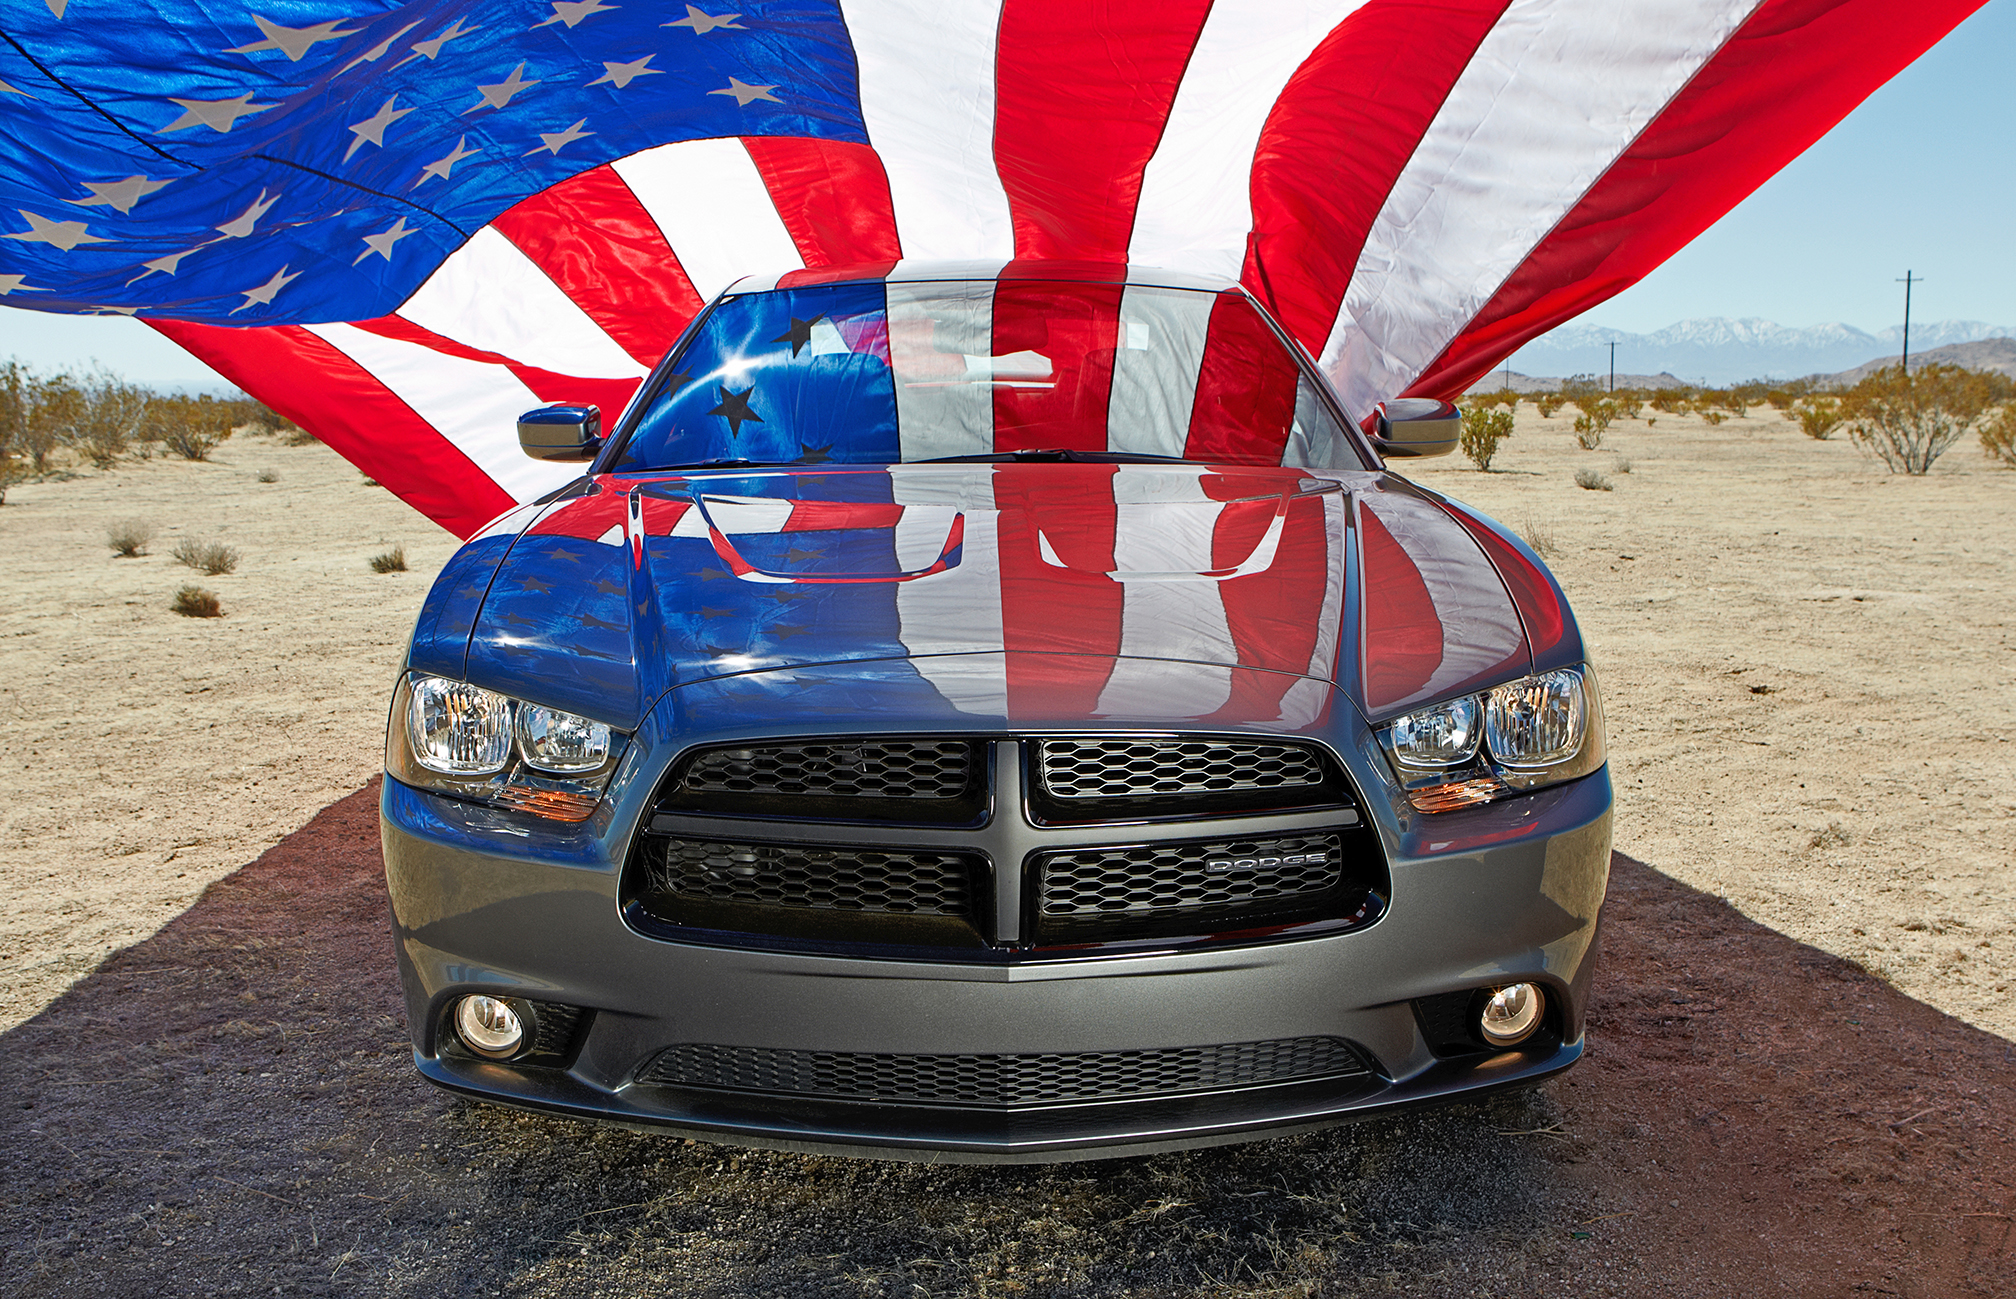 charger_flag_plus15.jpg